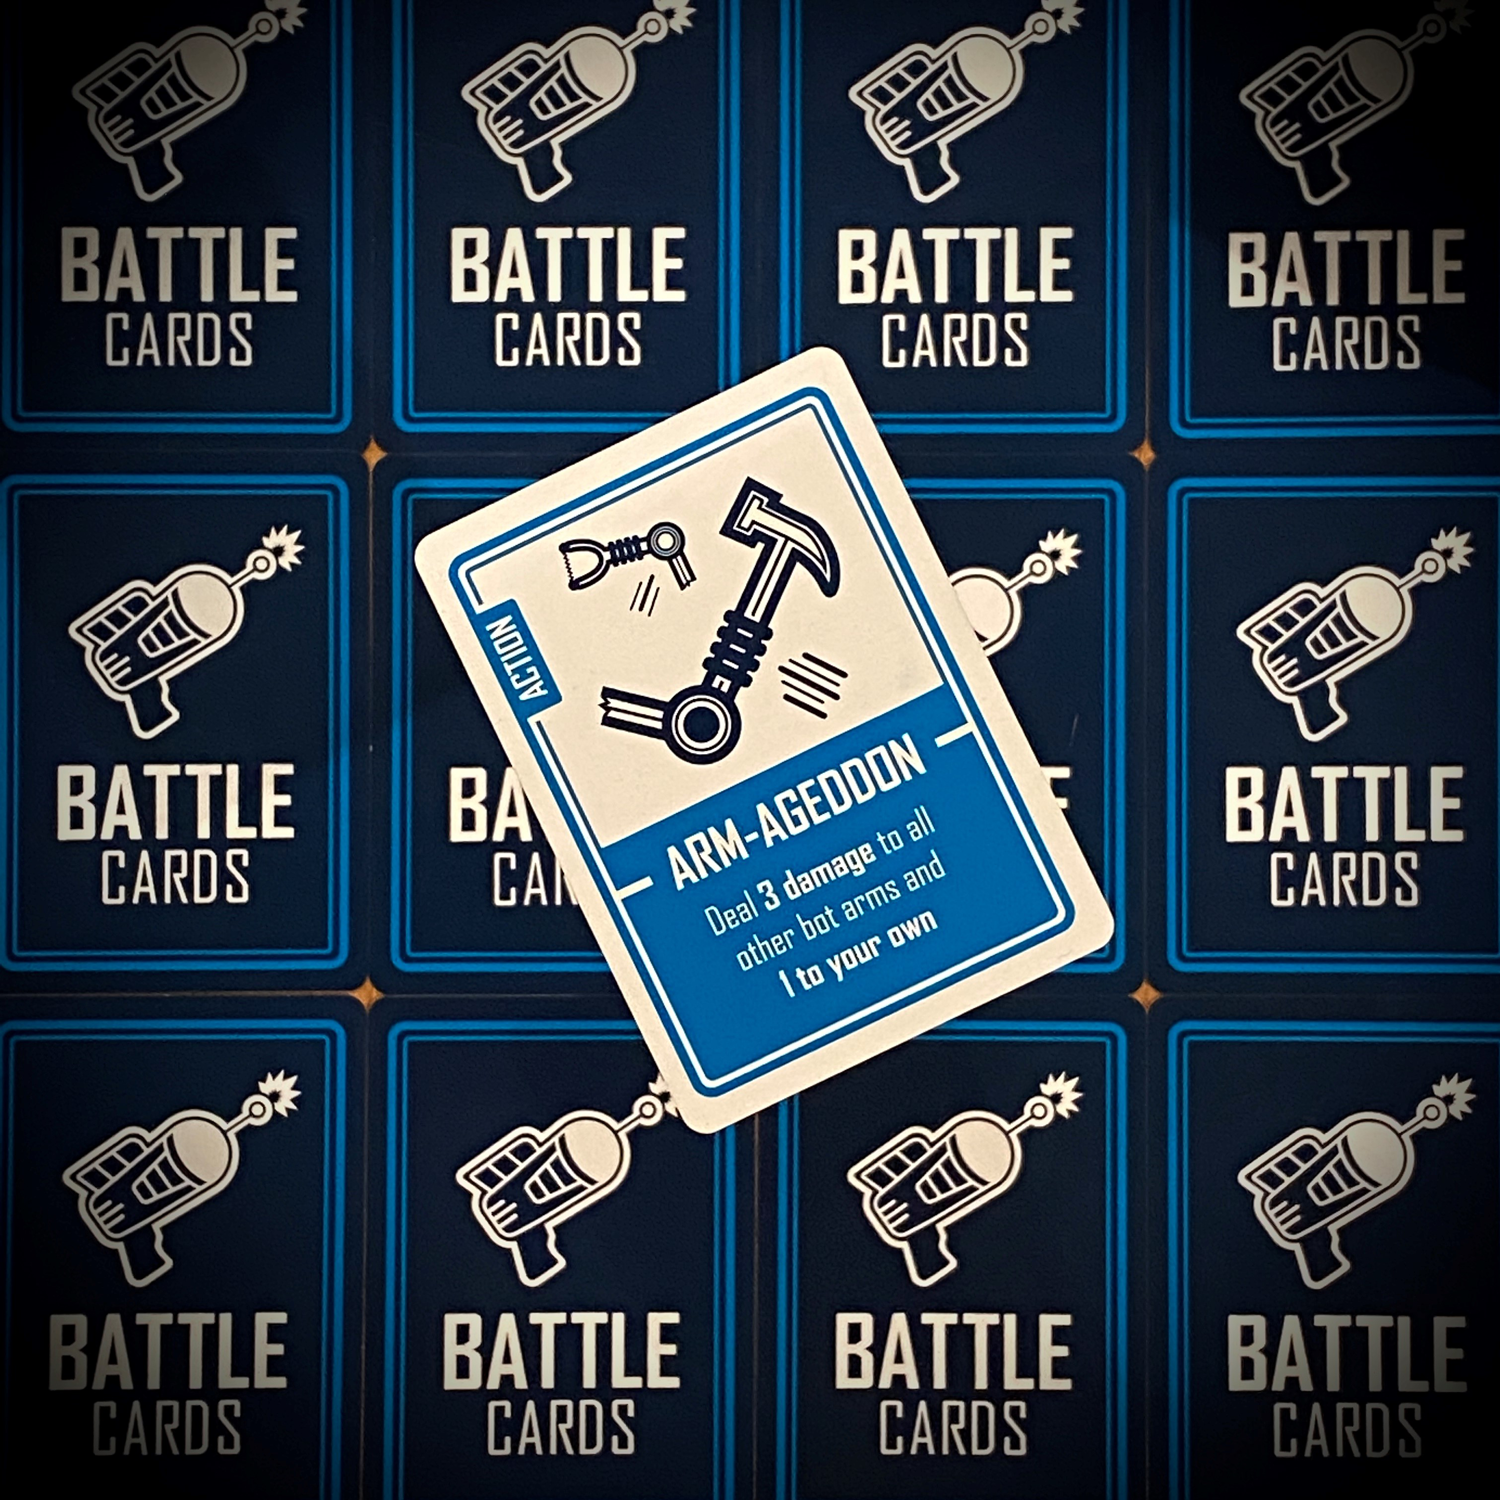 An attack Battle Cardfrom the game Bots Up